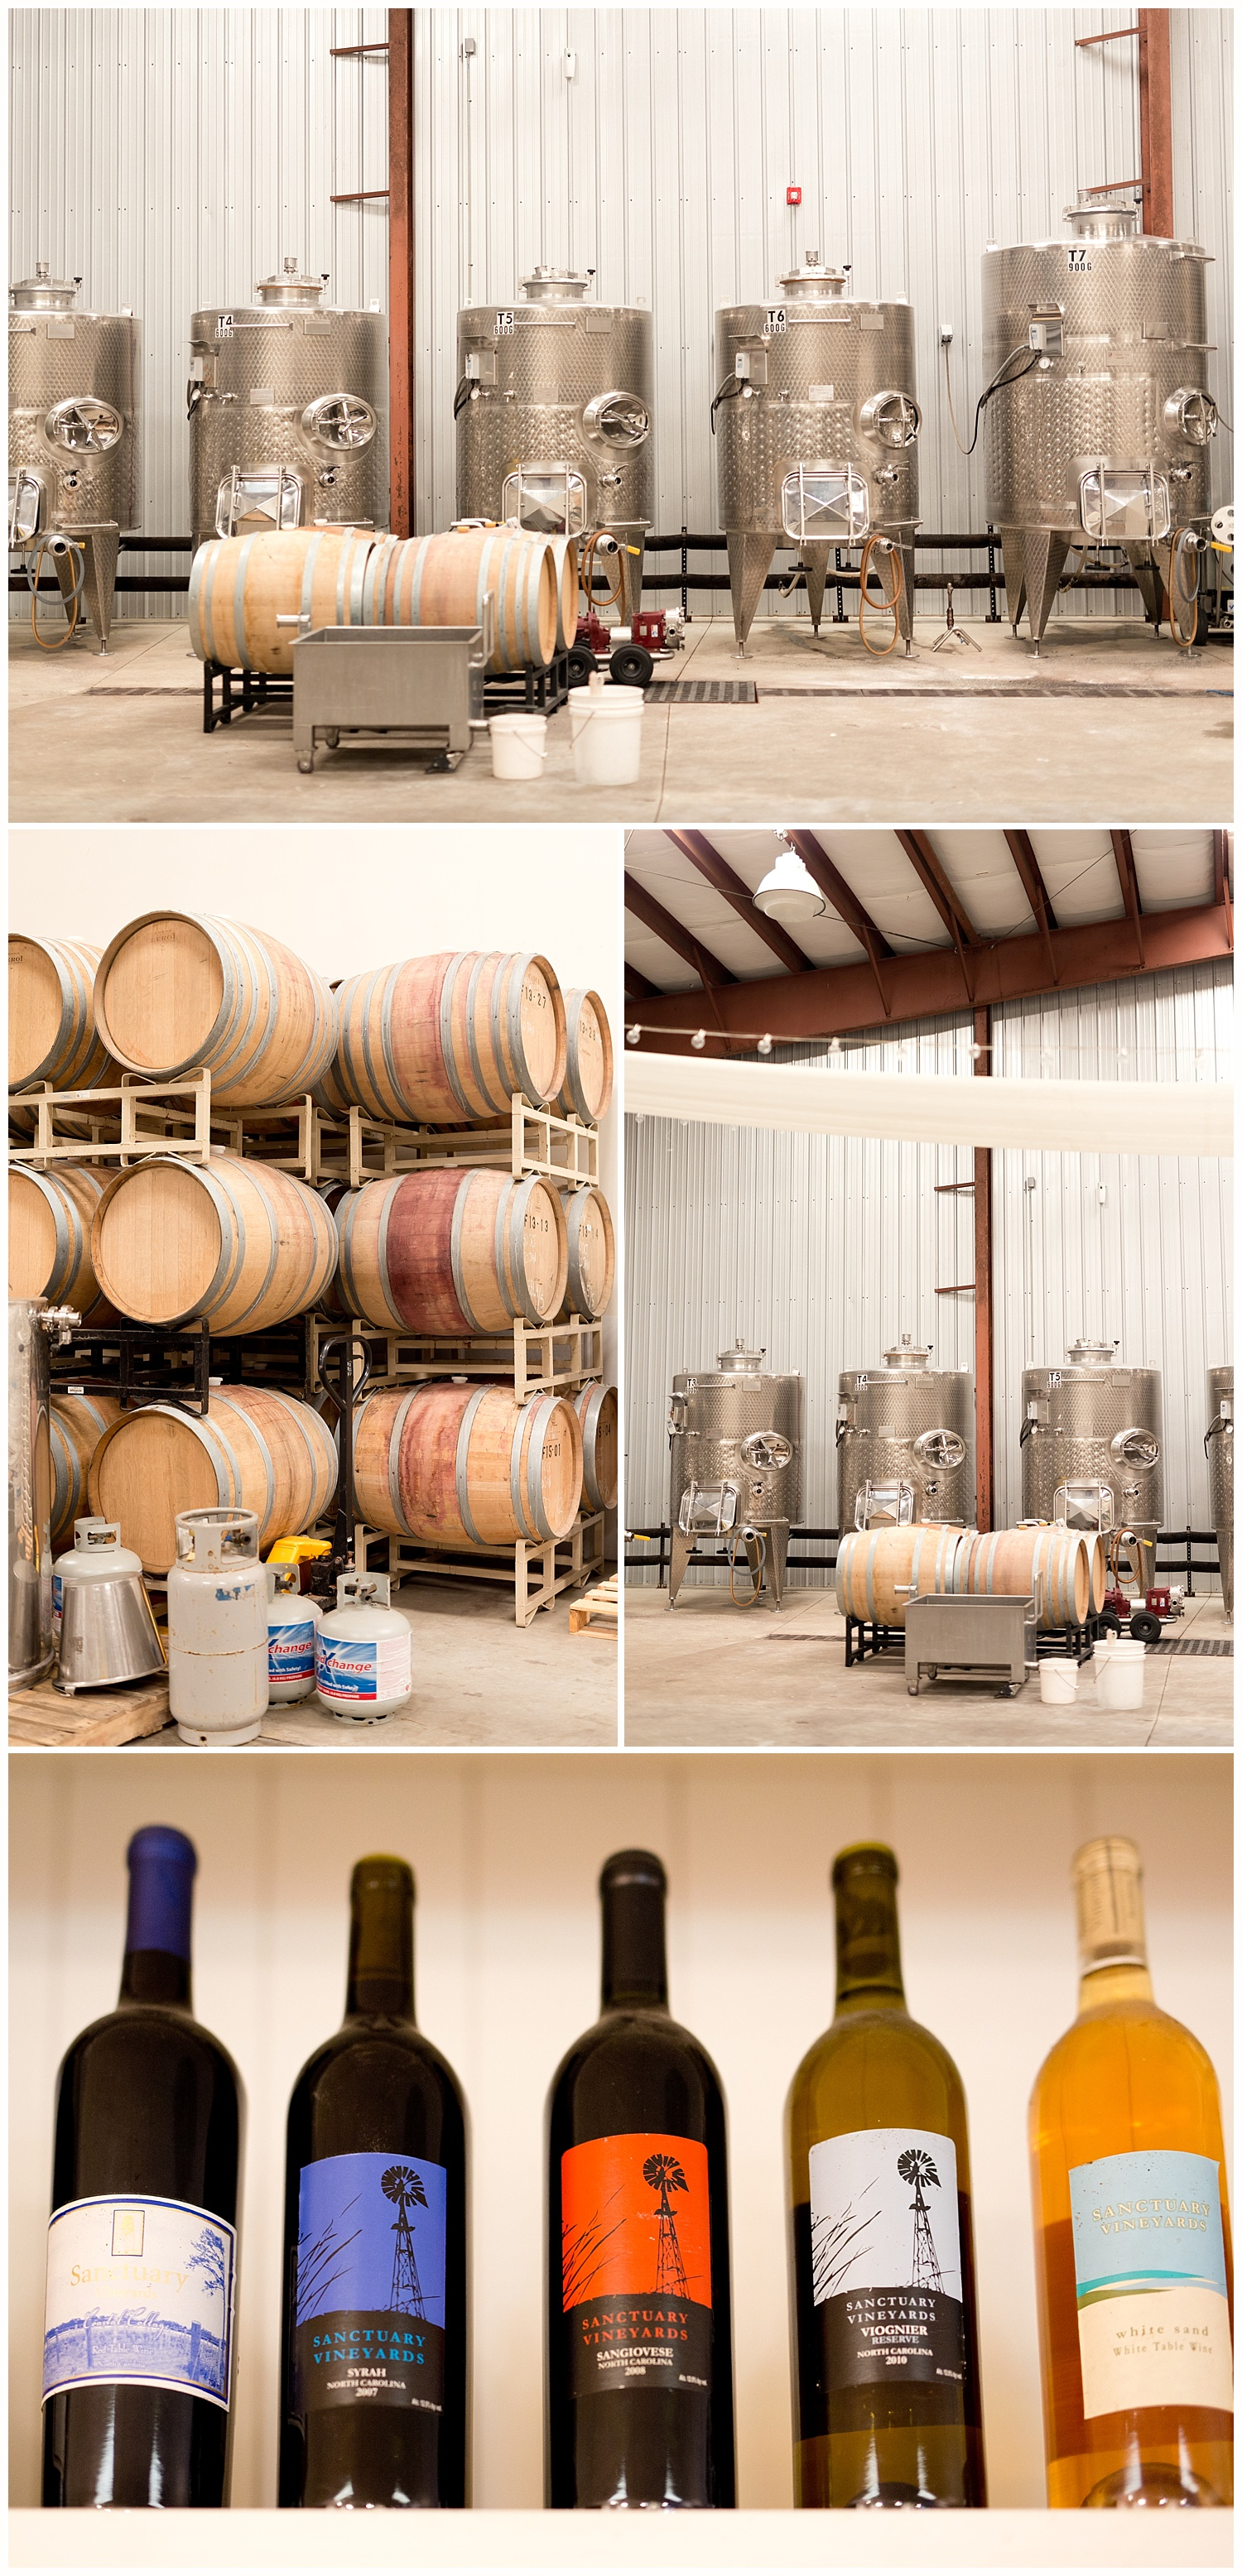 wine barrels and bottles at Sanctuary Vineyards - North Carolina wine